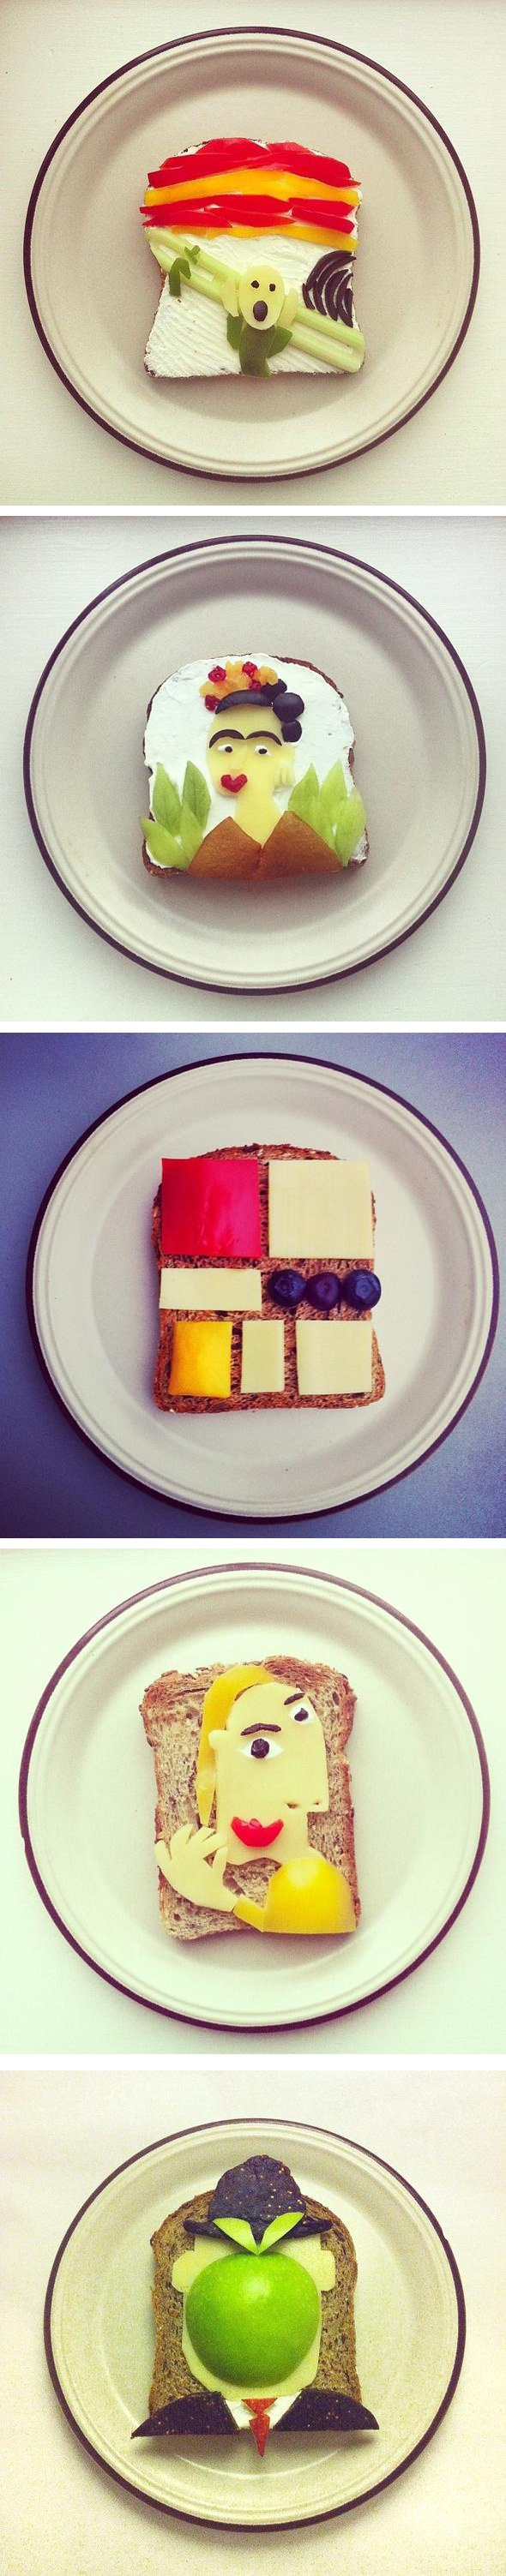 Famous works of art as food!